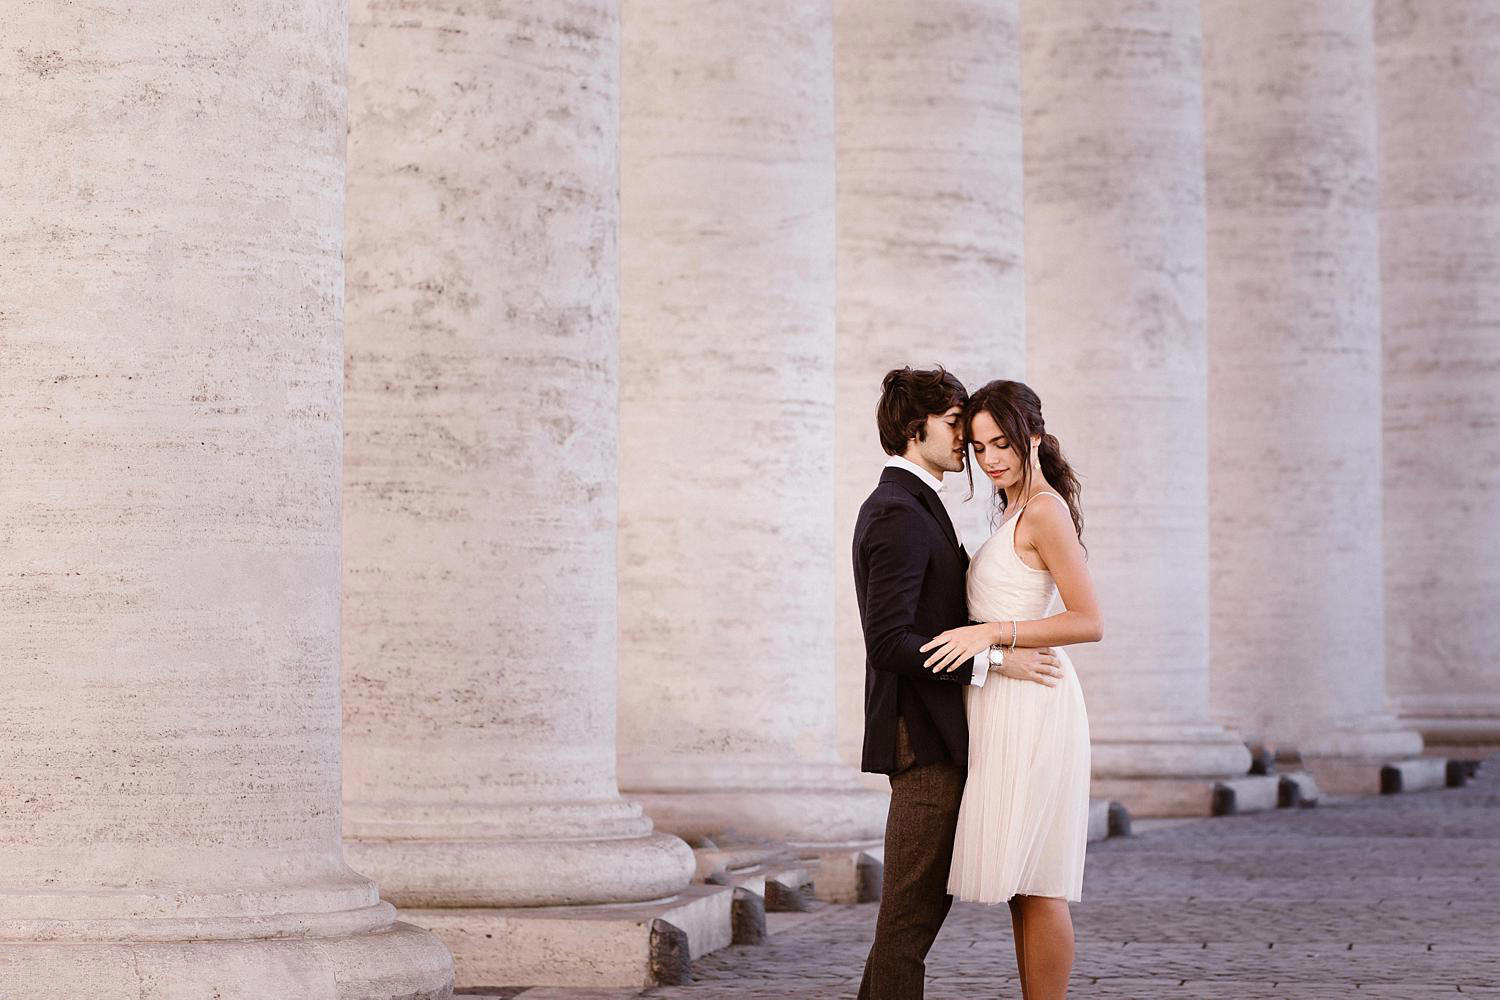 gs weddingphotographer rome 05 1 - Giulia & Simone - Elegant Couple Shooting in Rome